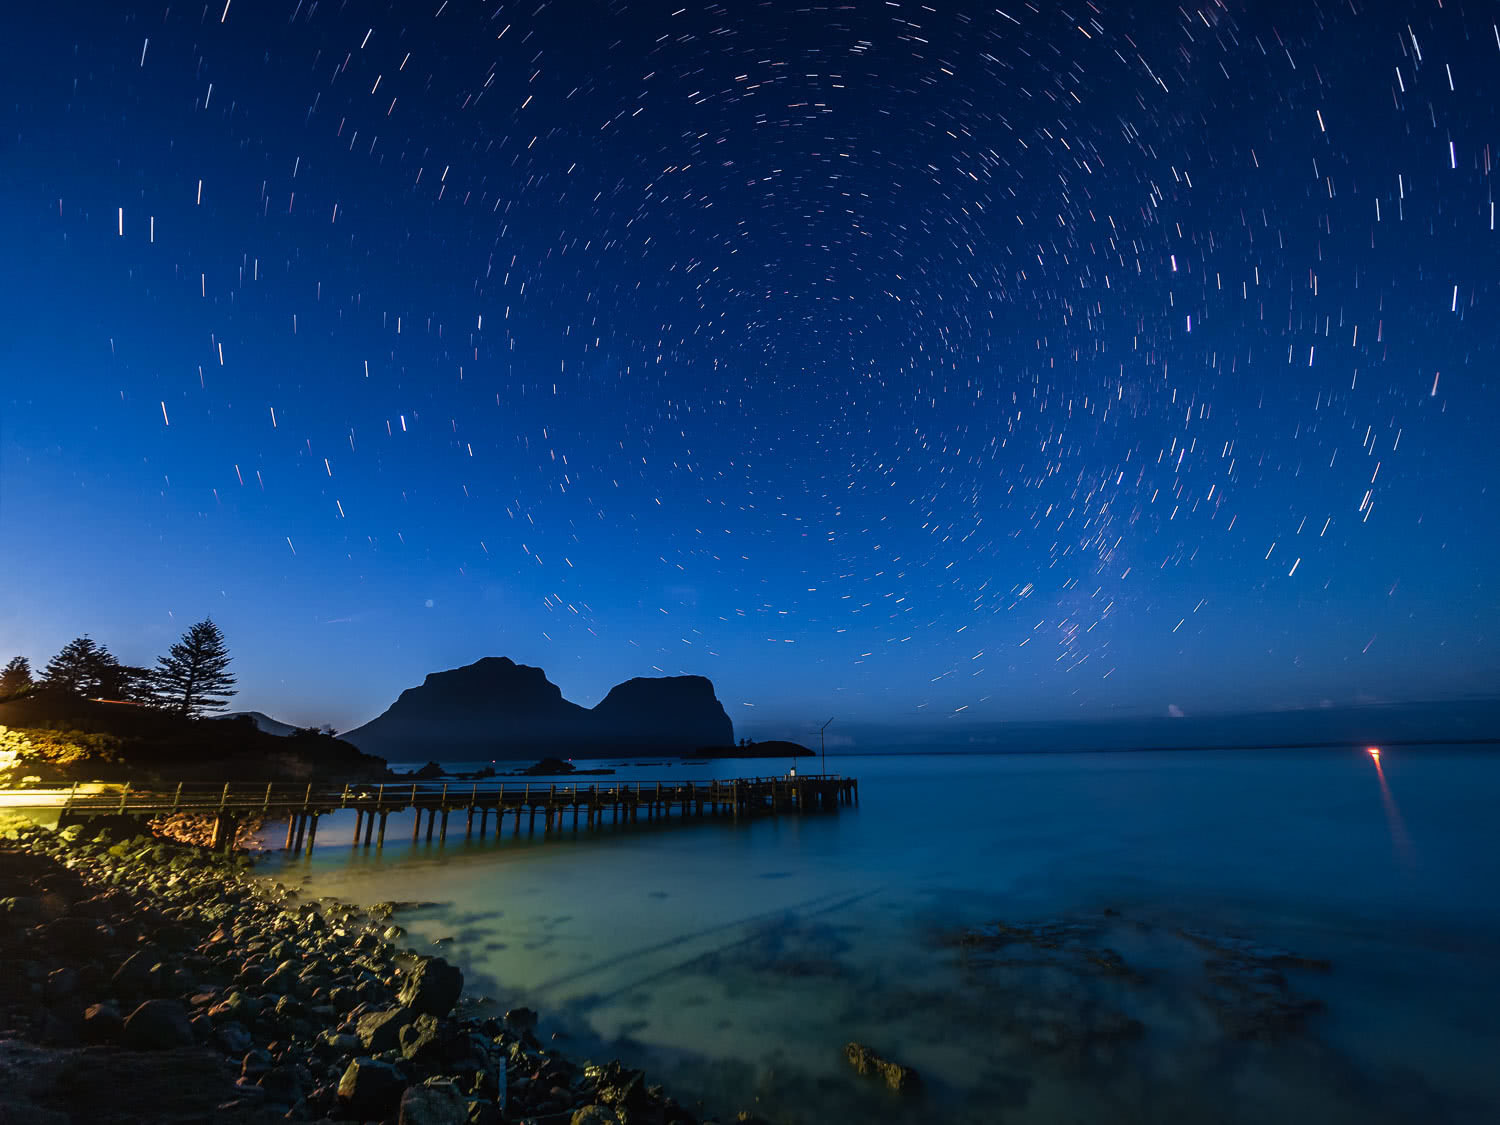 Lord Howe Island's Photography Hot Spots, Matt Horspool, pier, night sky, astrophotography, stars, clear water